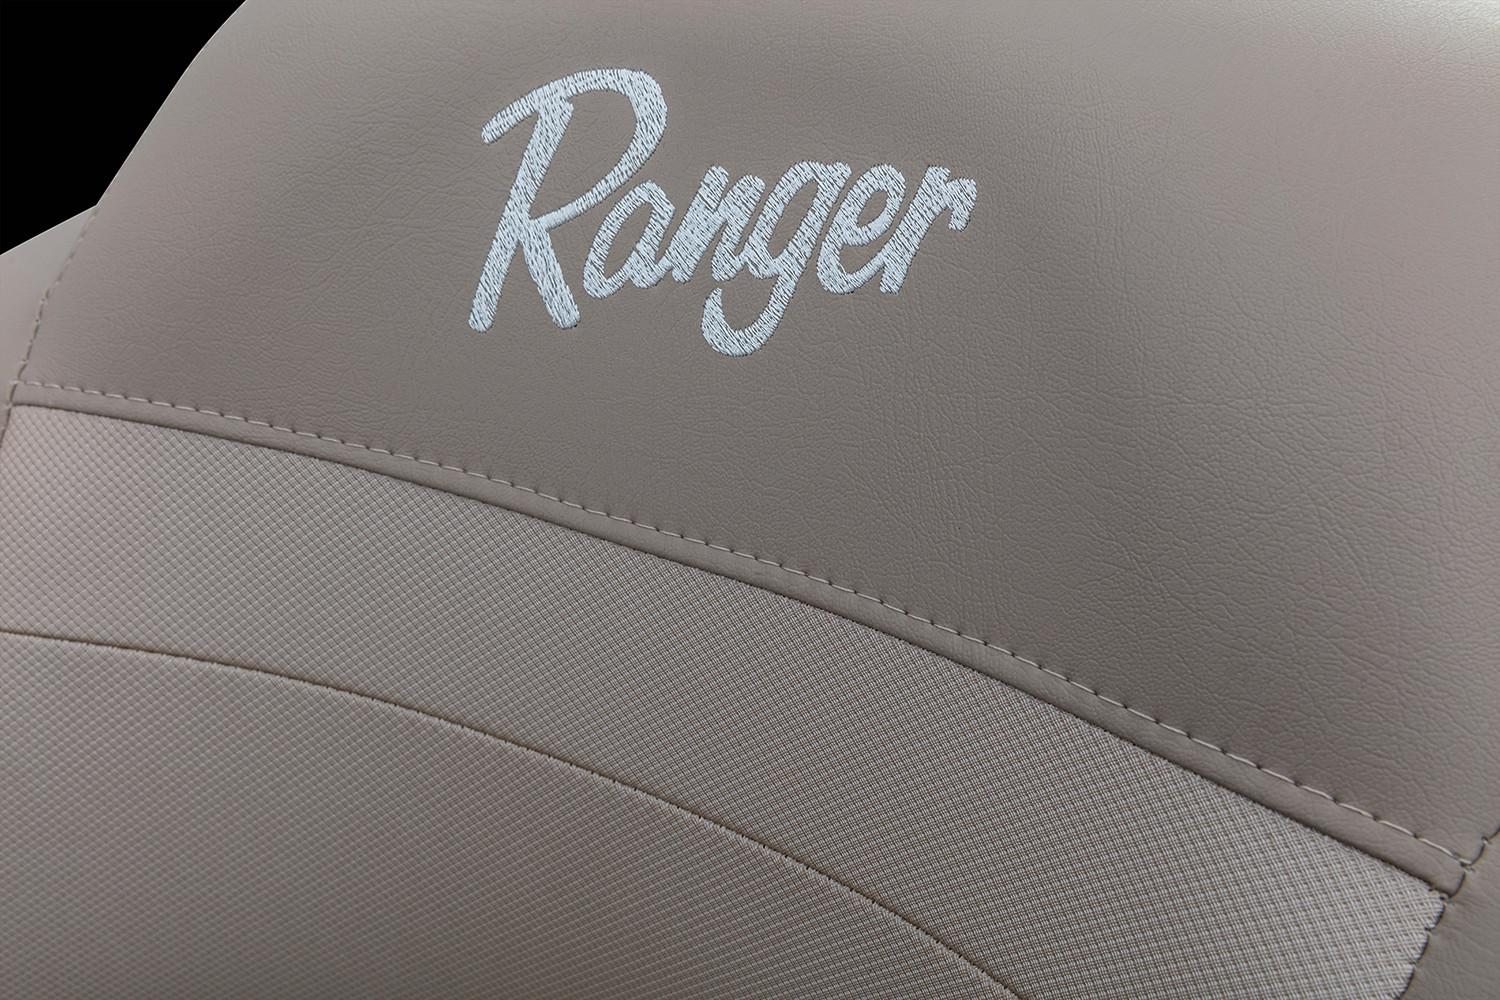 2020 Ranger Reata 200F in Eastland, Texas - Photo 29